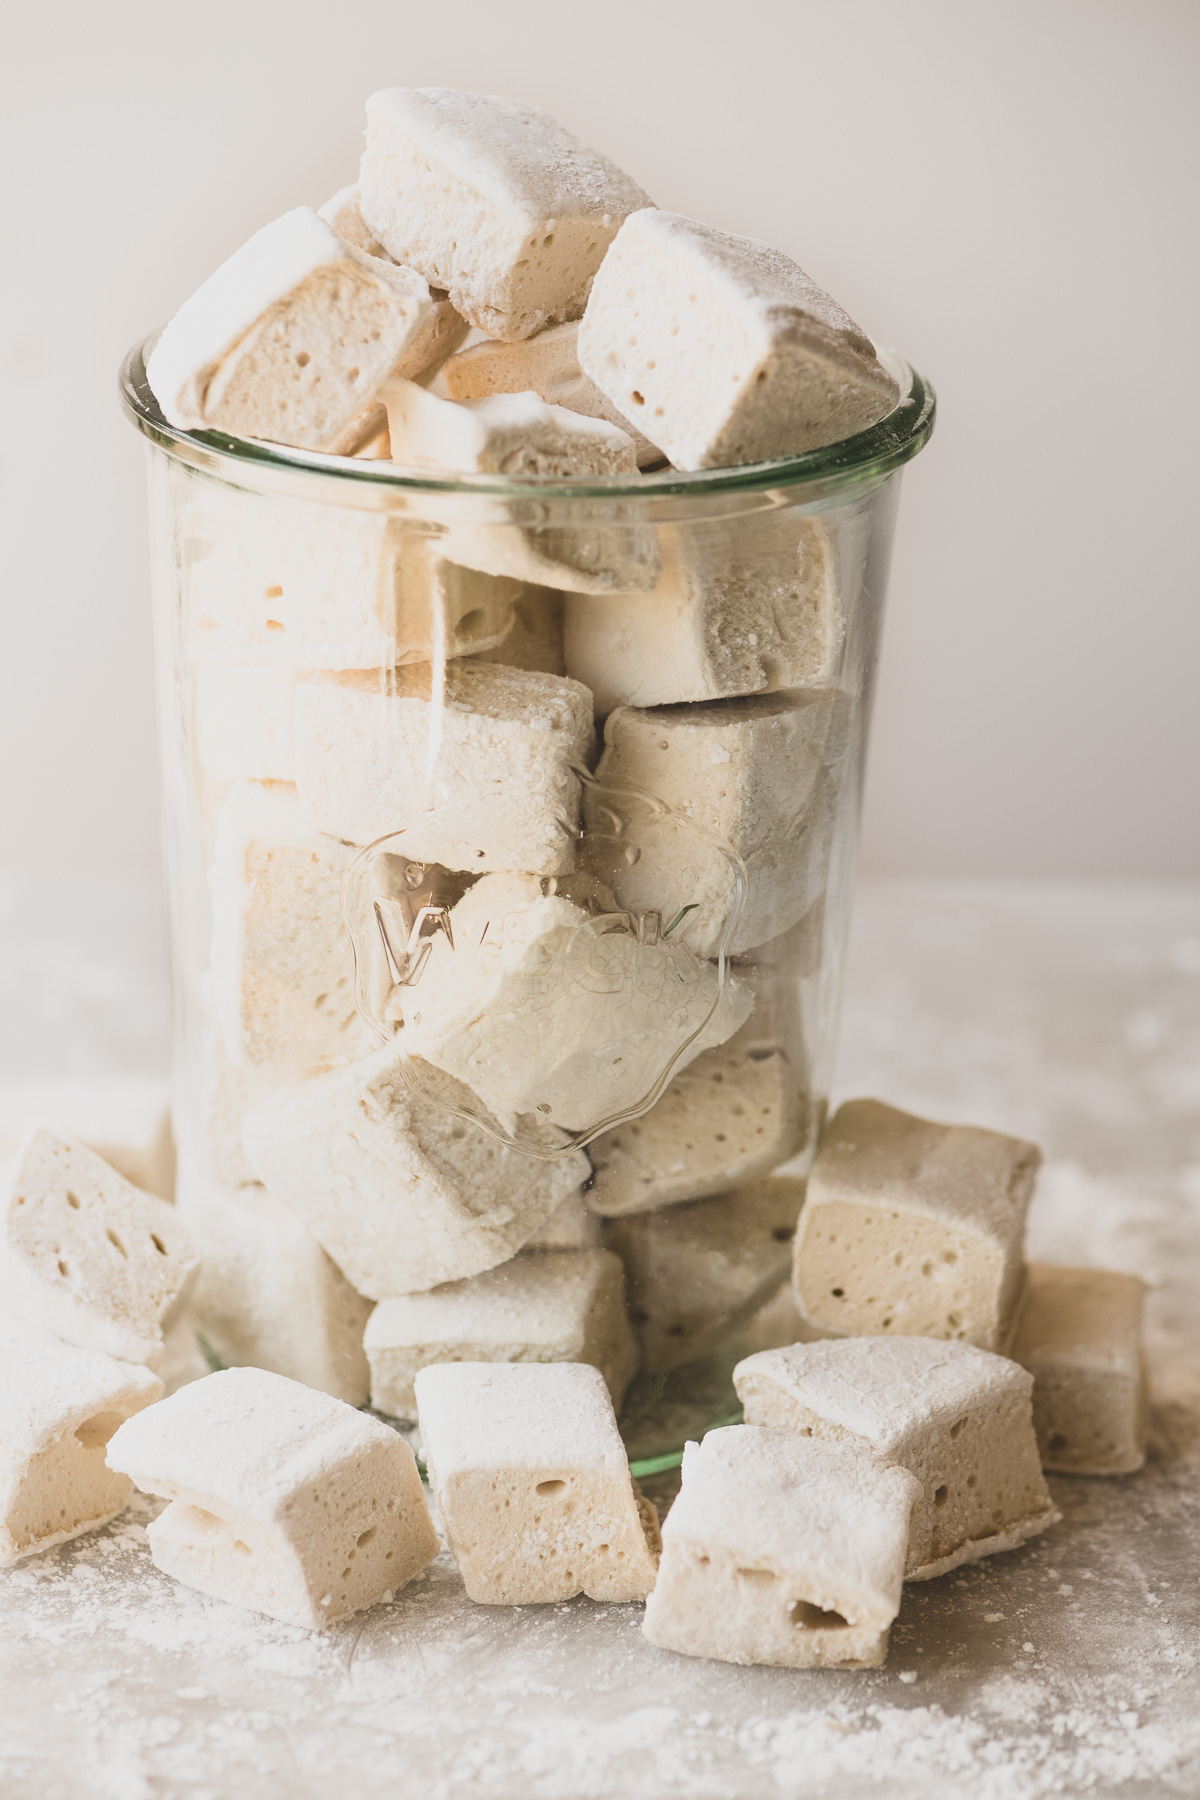 homemade maple marshmallows in a jar